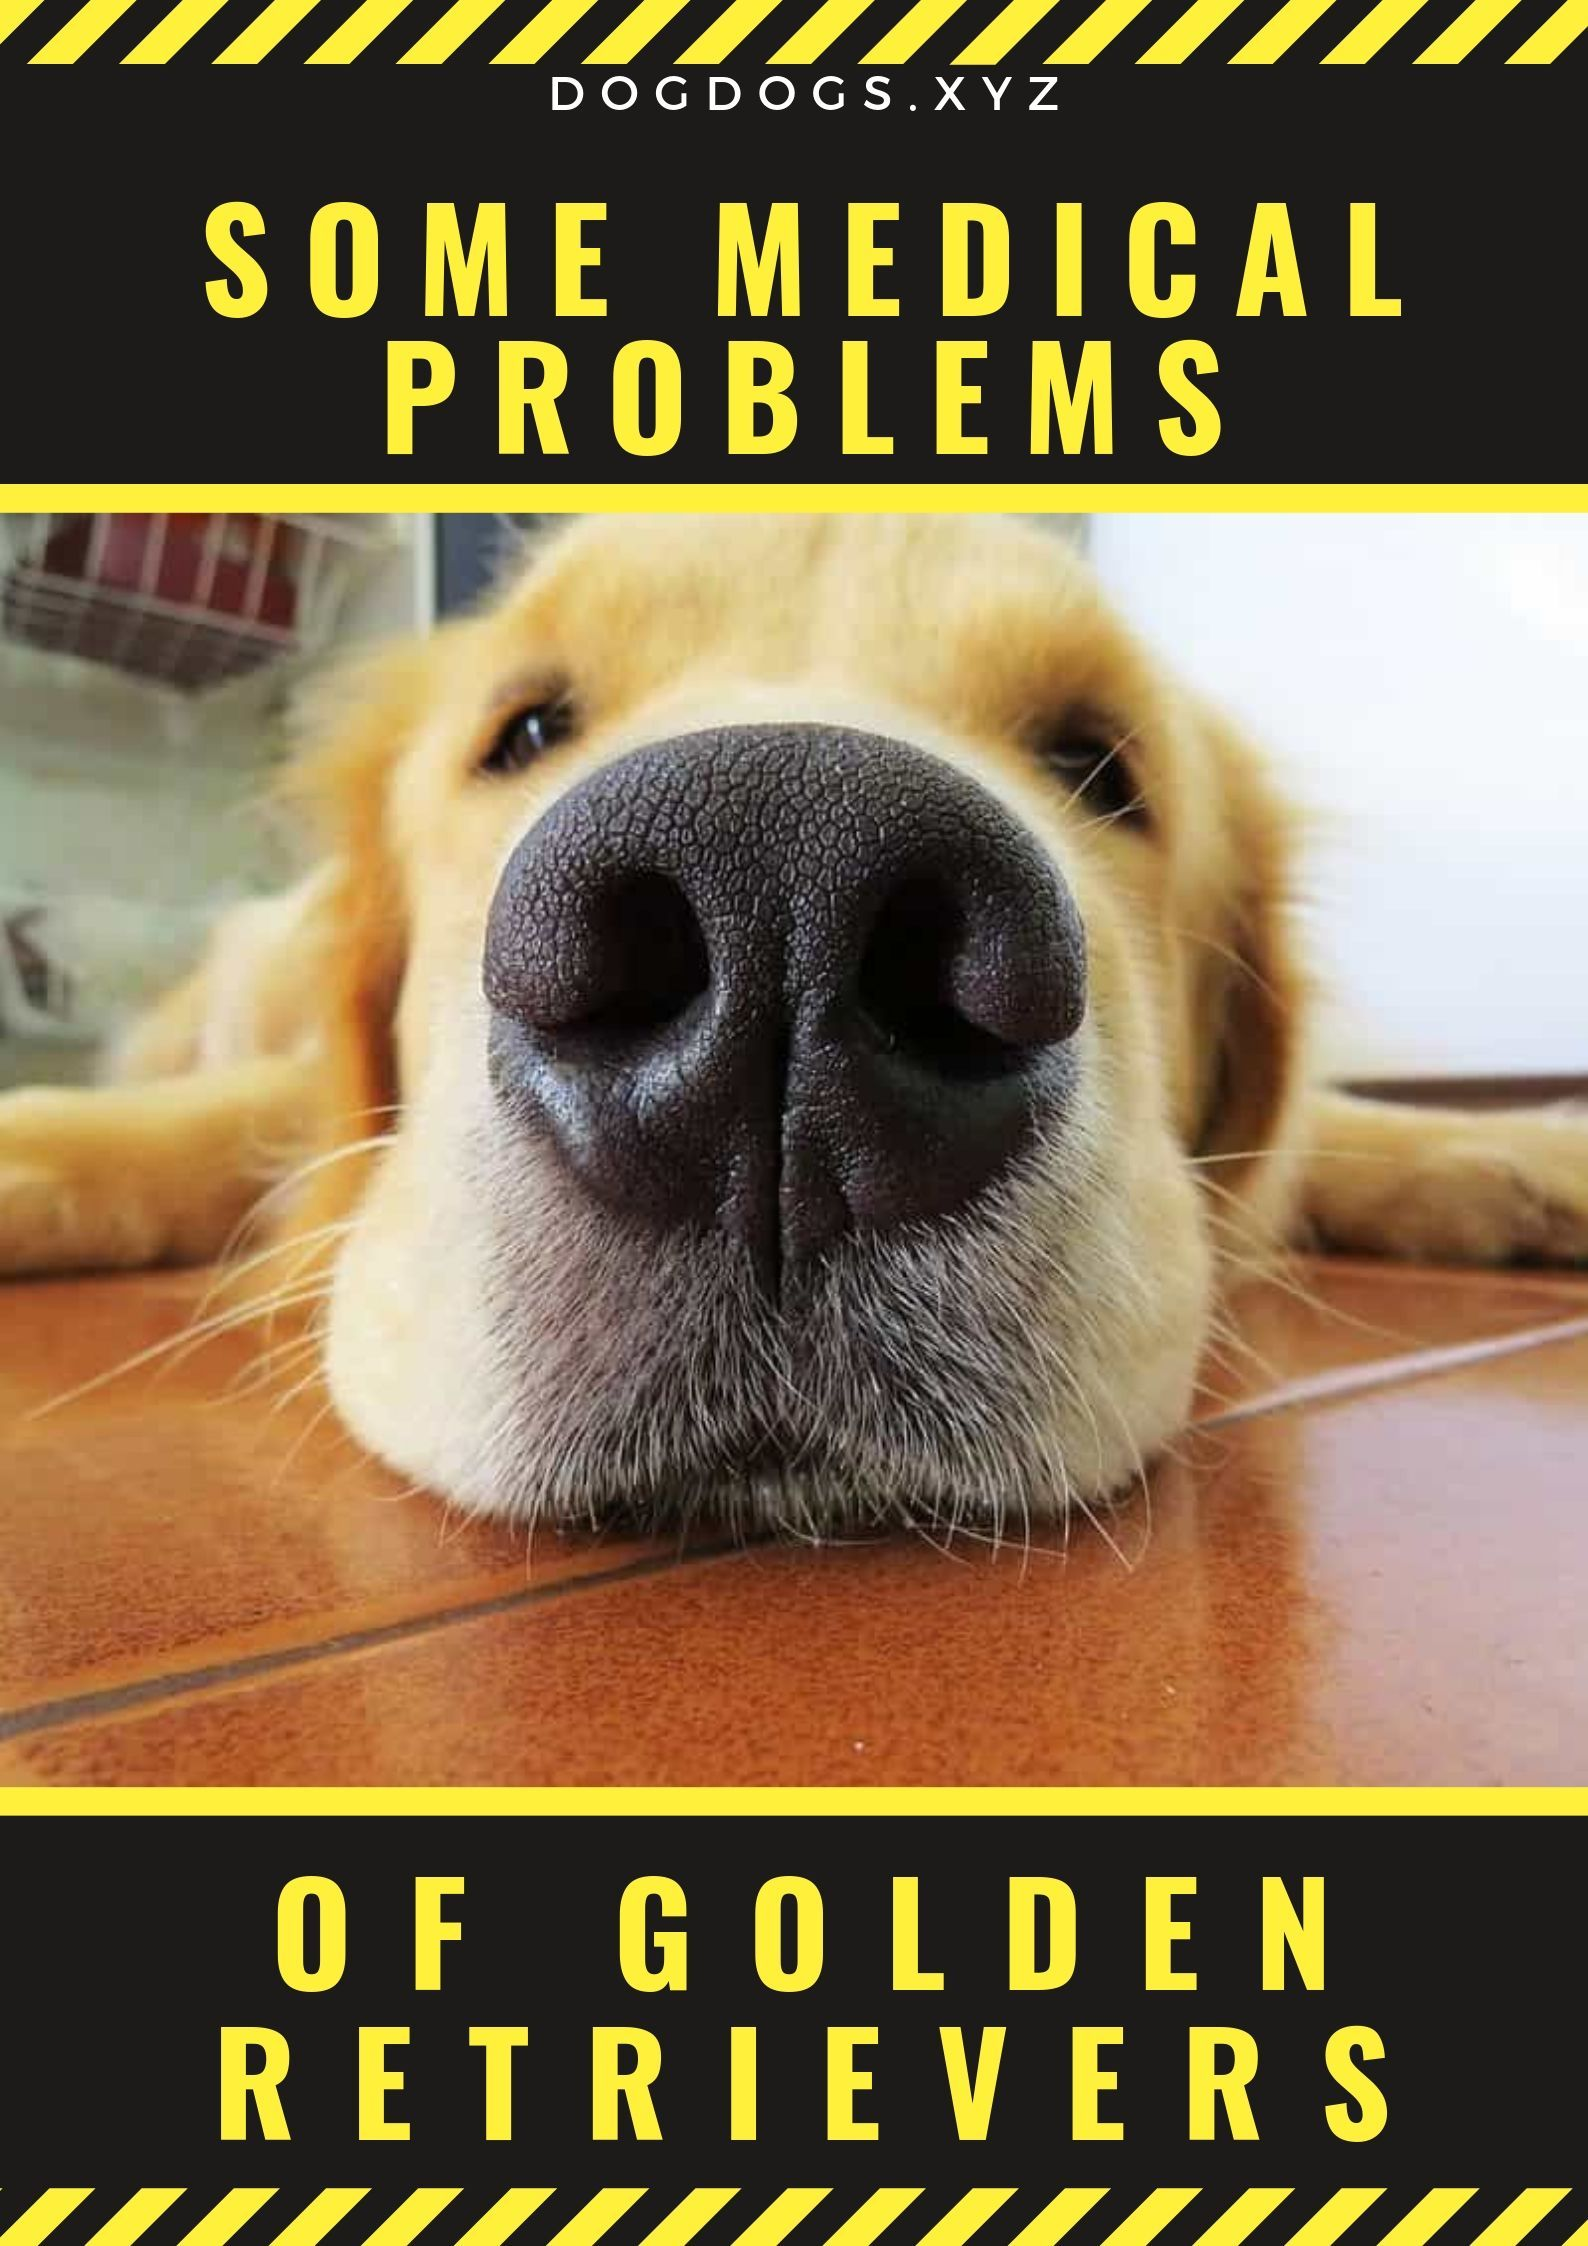 Some Medical Problems Of Golden Retrievers Dog Disease Or